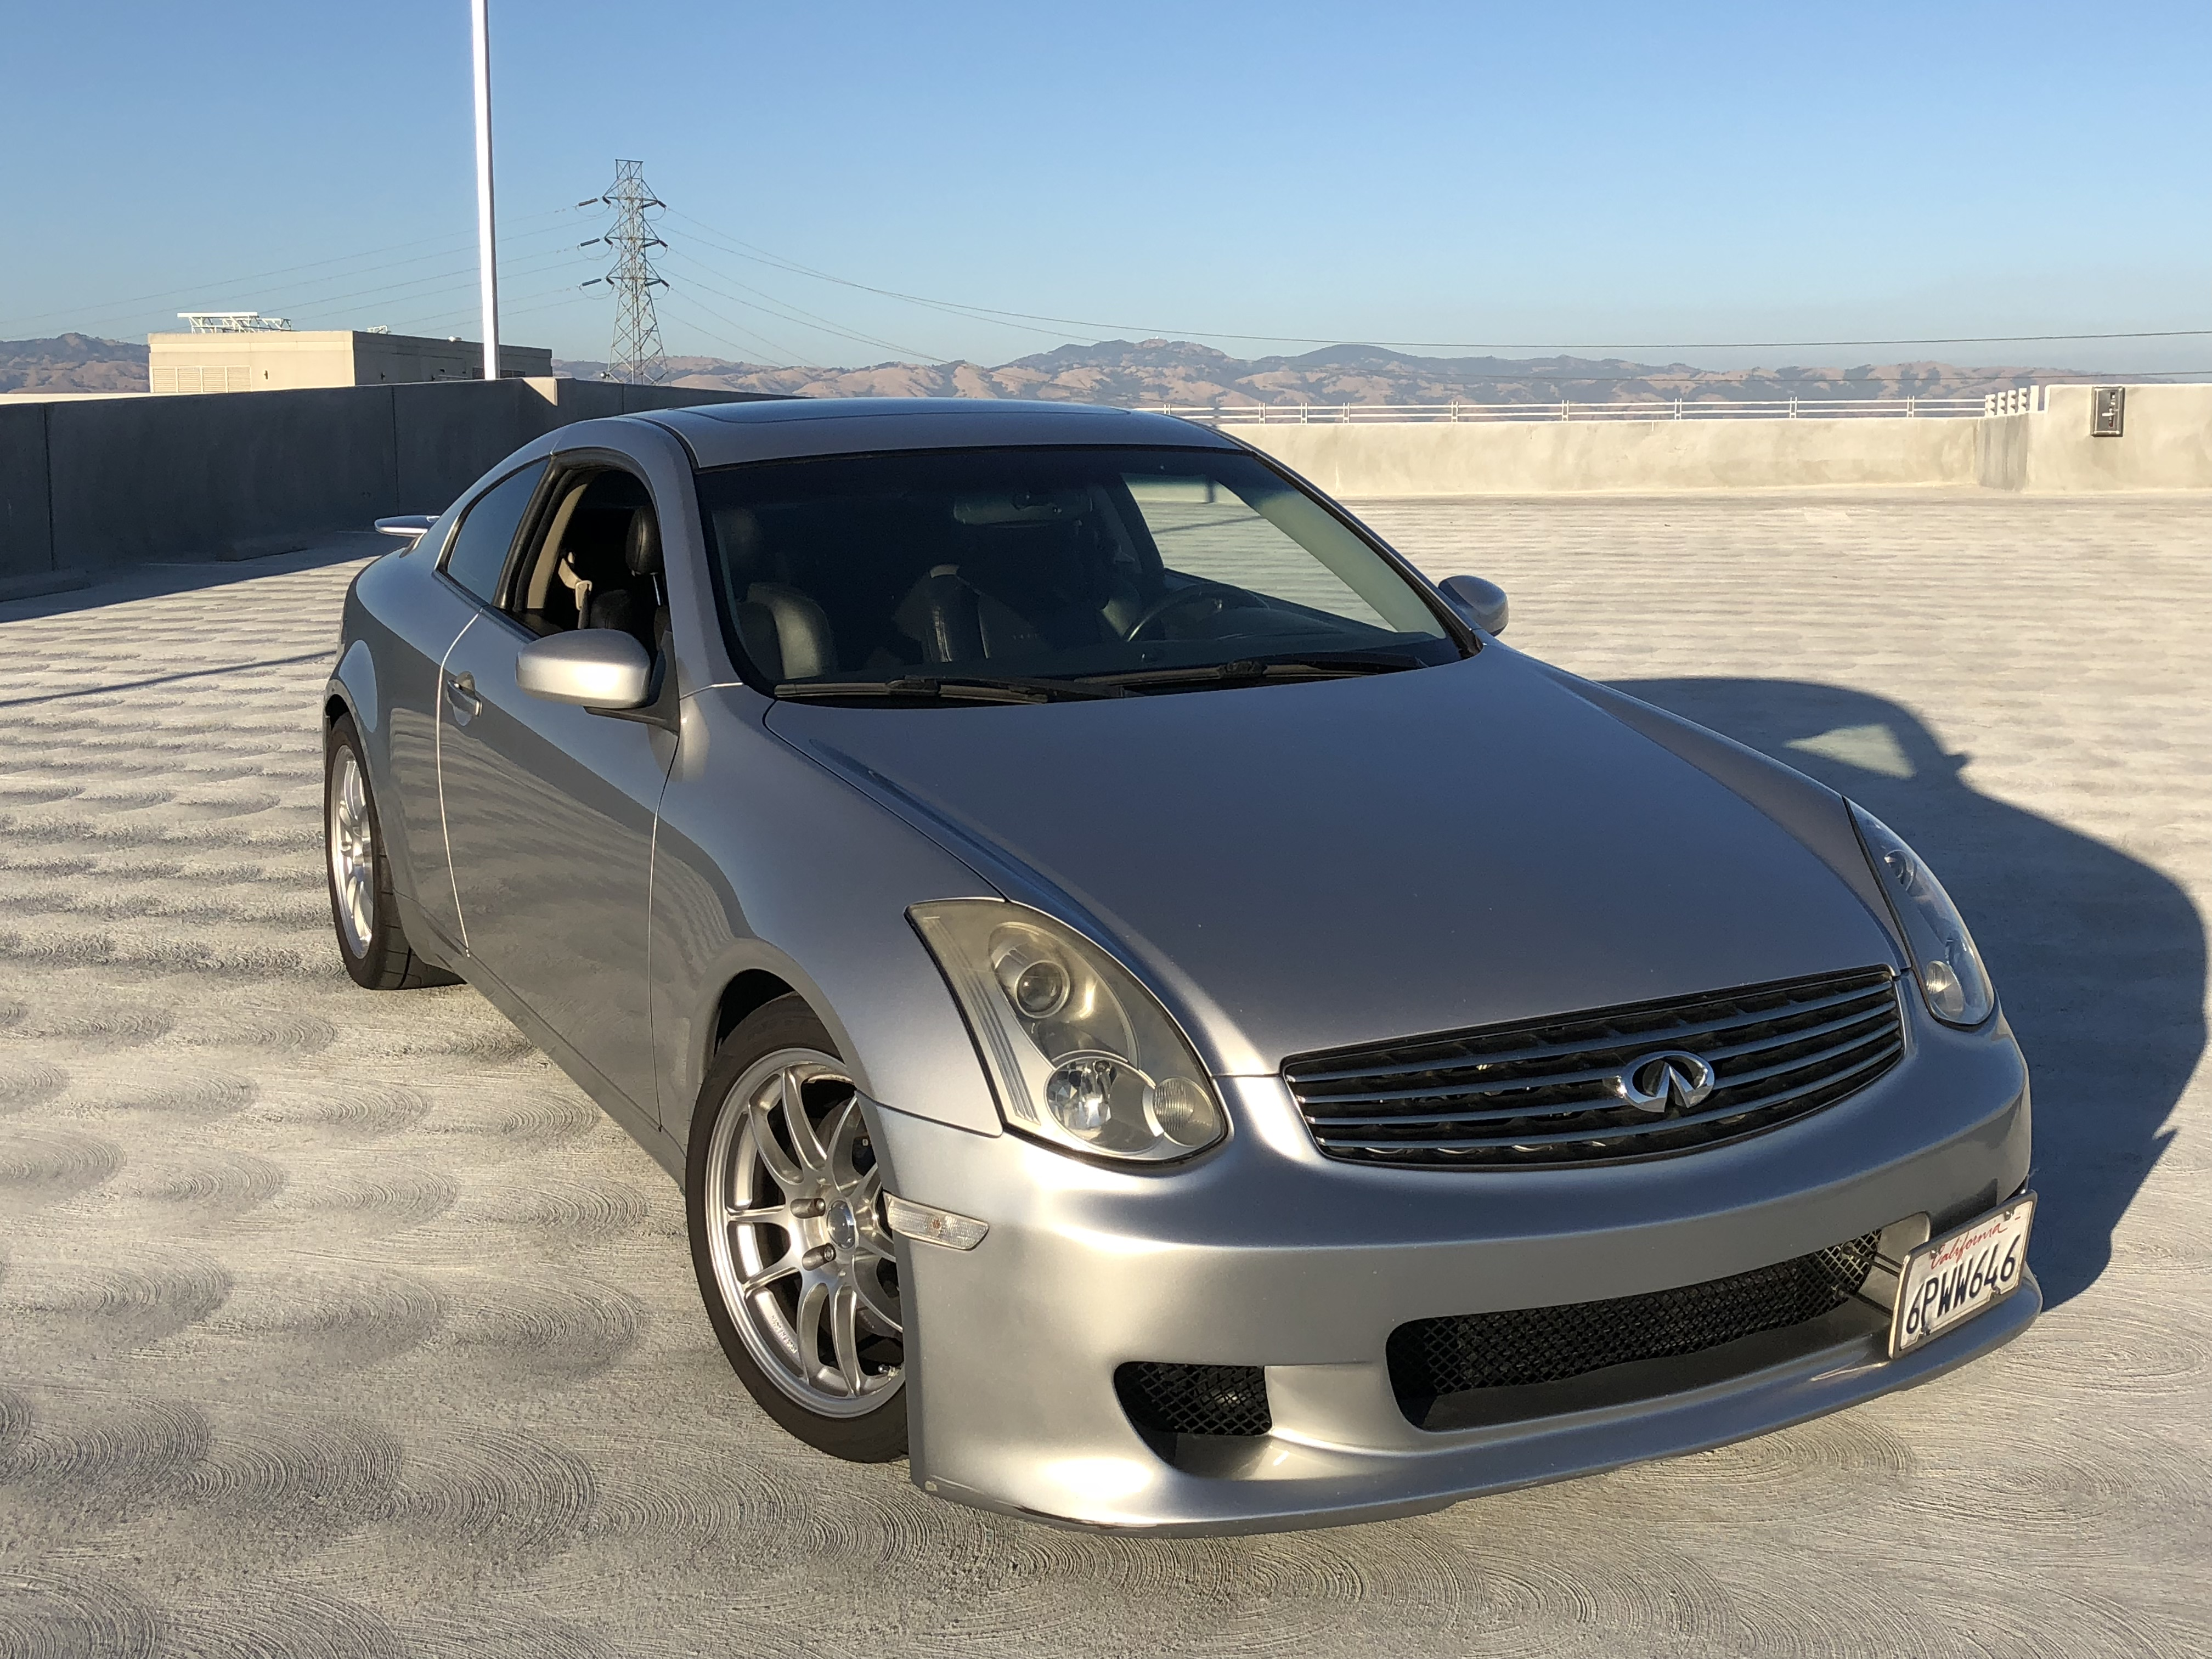 g35 coupe owners manual